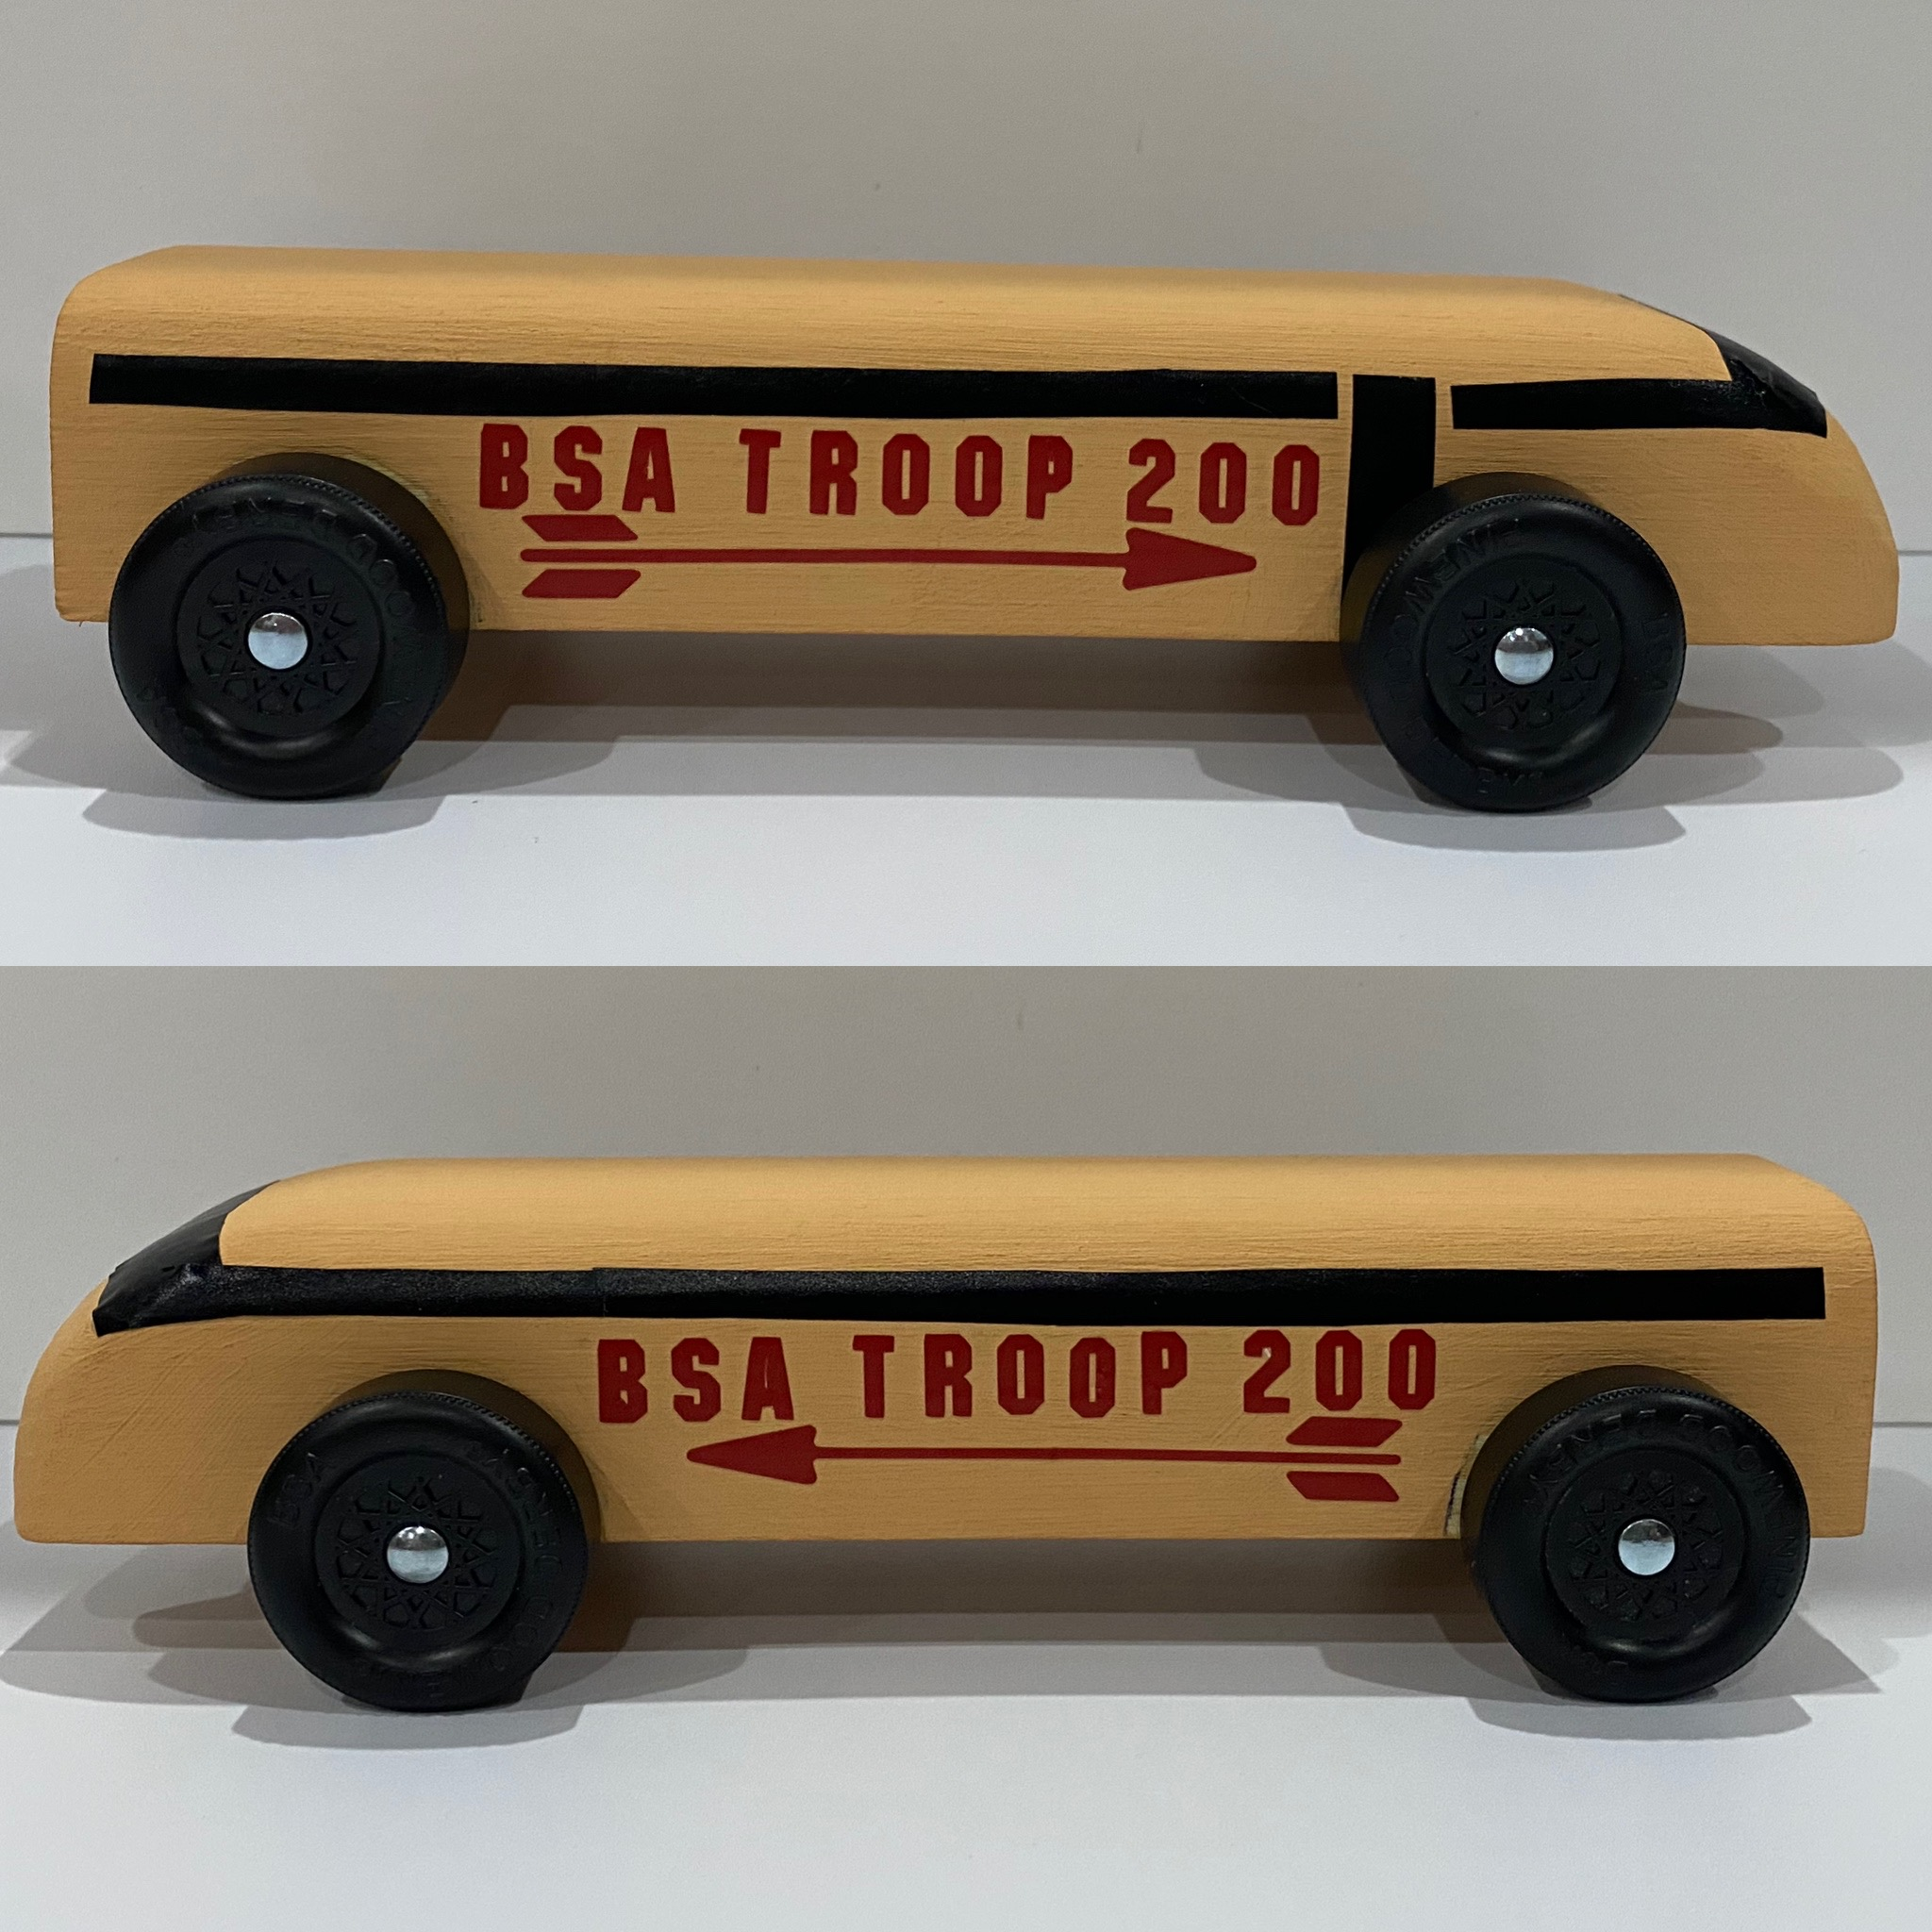 Troop 200 bus